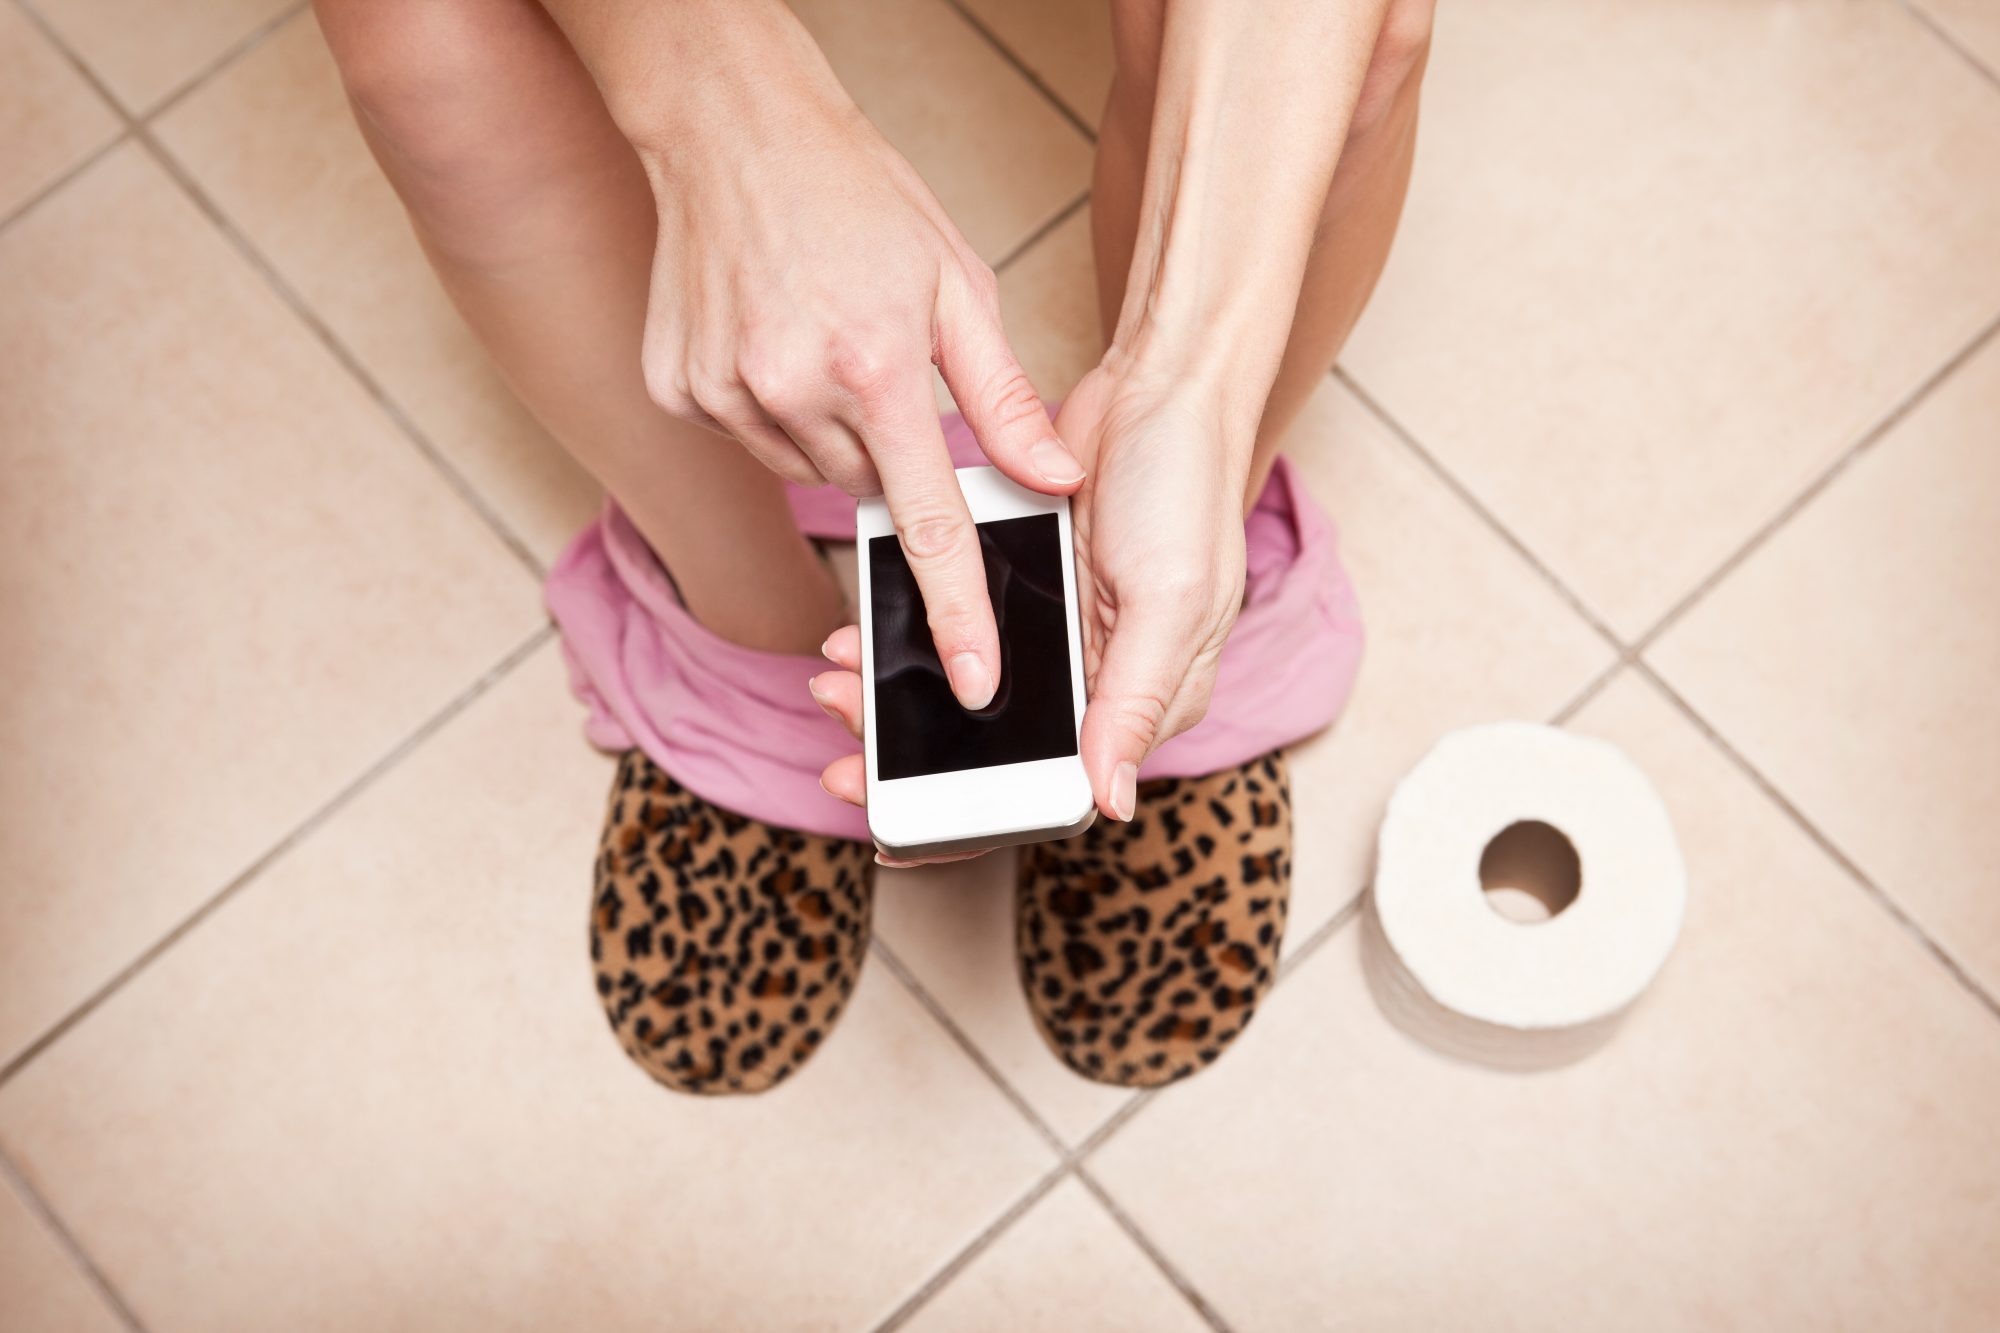 Here's Why You Should Stop Bringing Your Phone Into the Bathroom